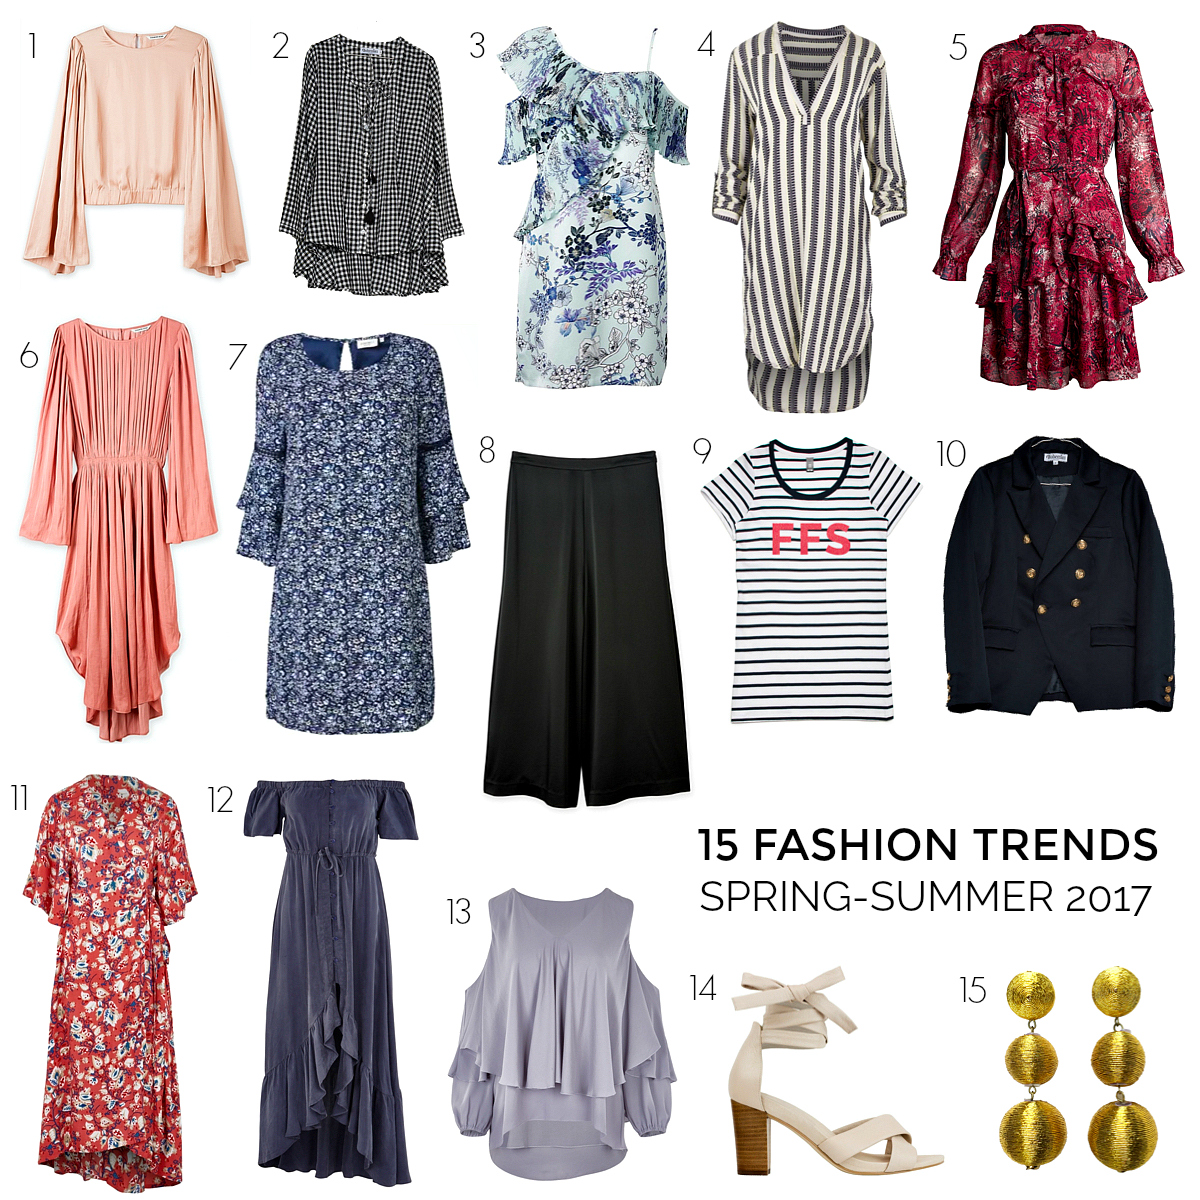 These are the 15 2017 spring-summer trends you'll want in your wardrobe